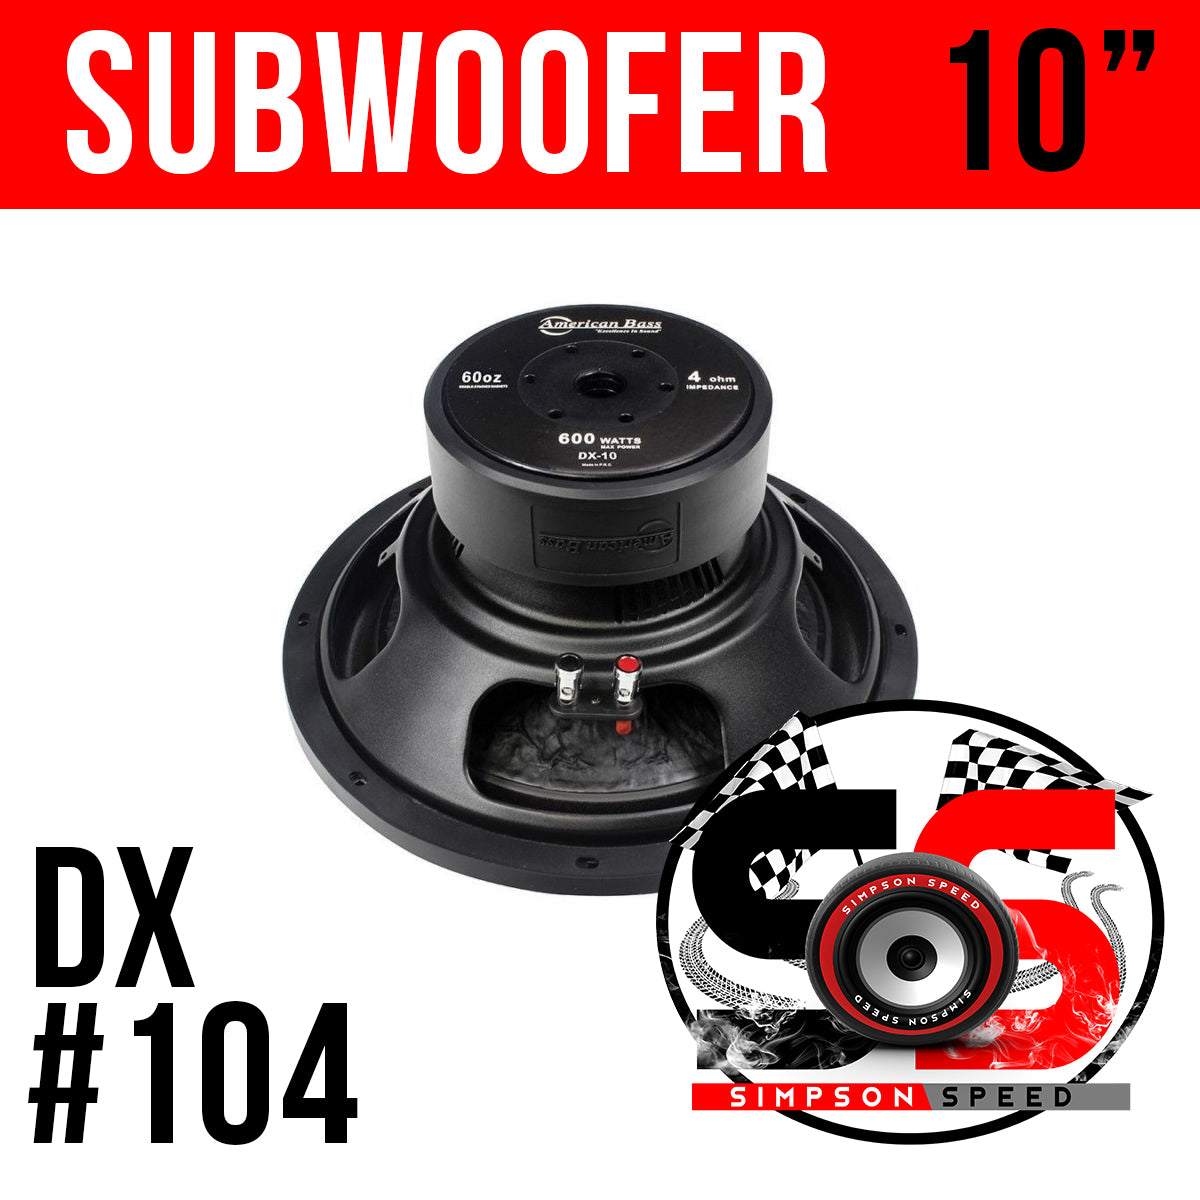 DX 10 American Bass Subwoofer